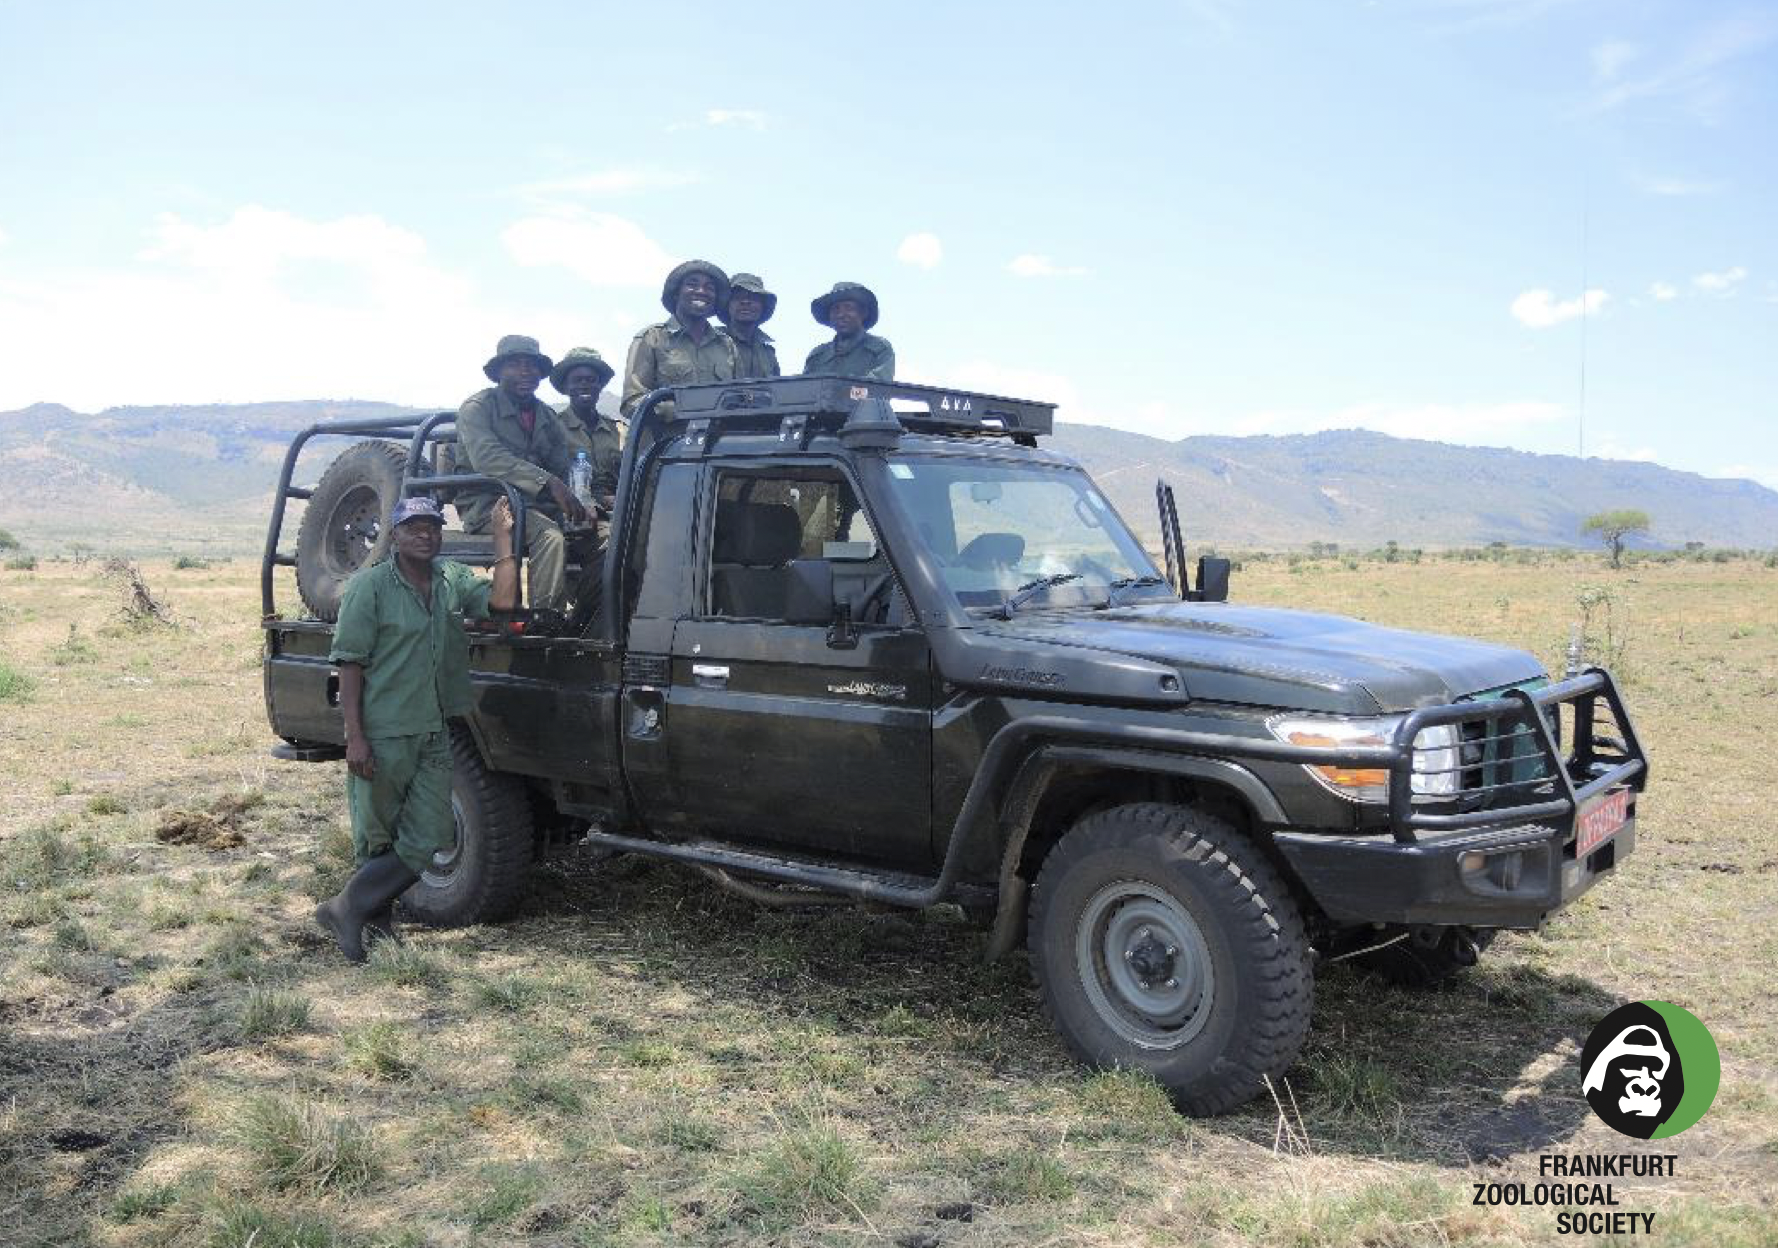 Teamwork identifying and destroying snares in the Serengeti ecosystem